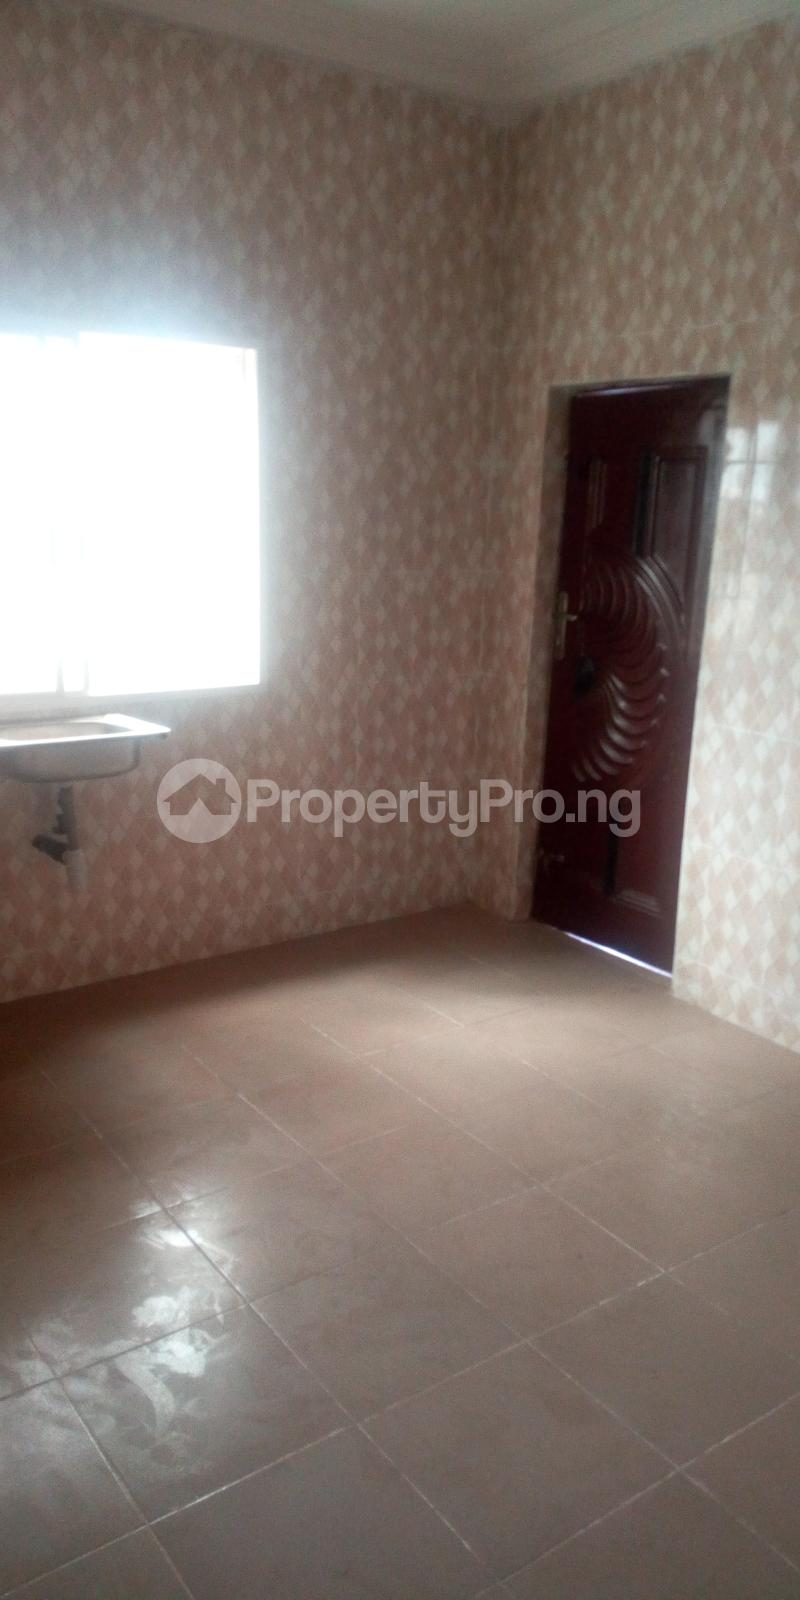 2 bedroom Flat / Apartment for rent Jehovah's witness road Calabar Cross River - 4